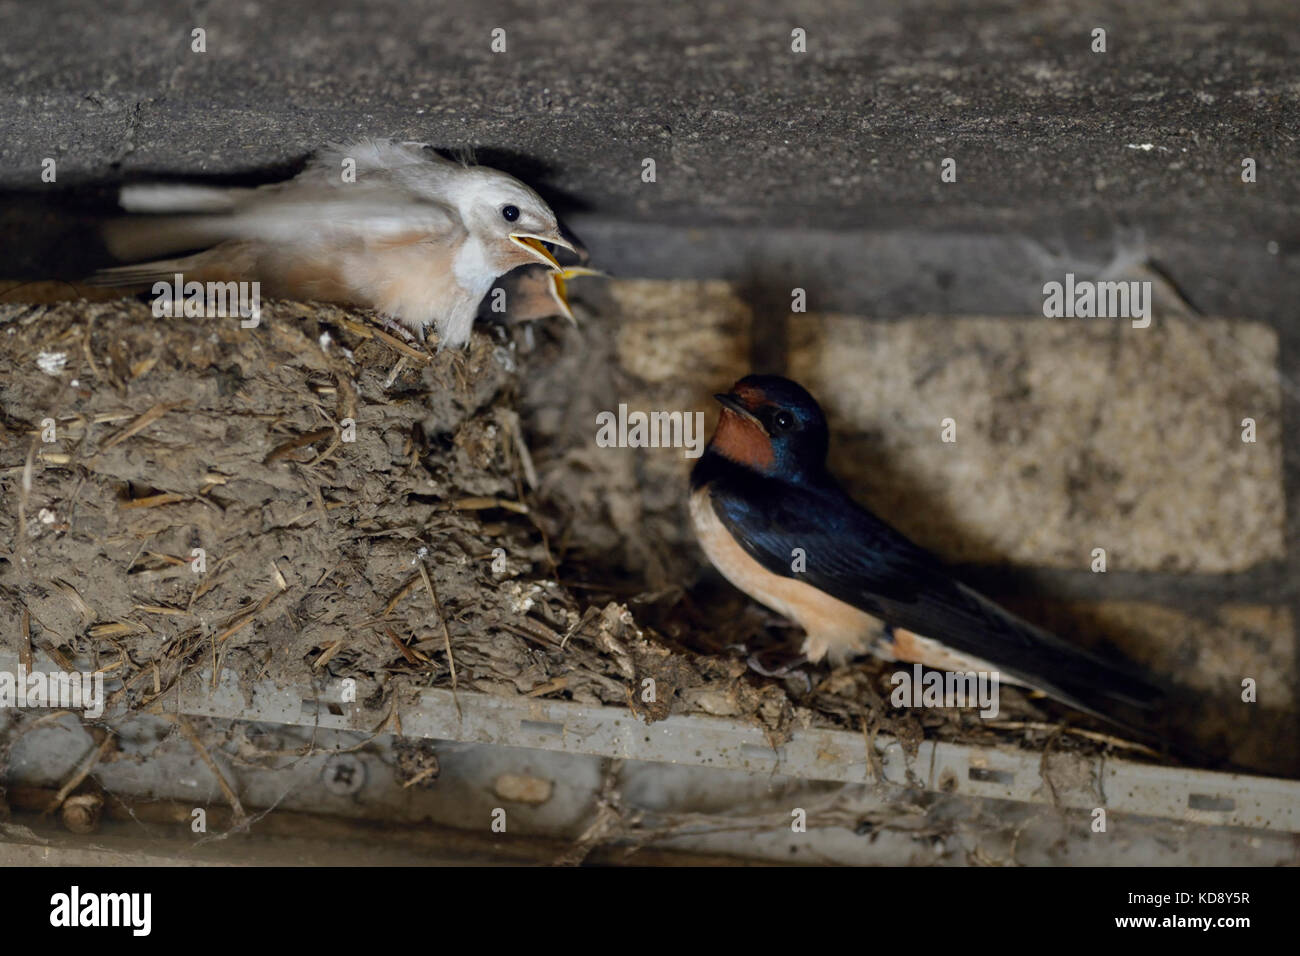 Barn Swallow / Rauchschwalbe ( Hirundo rustica ), adult perched next to its chicks in nest, two of them with white - Stock Image